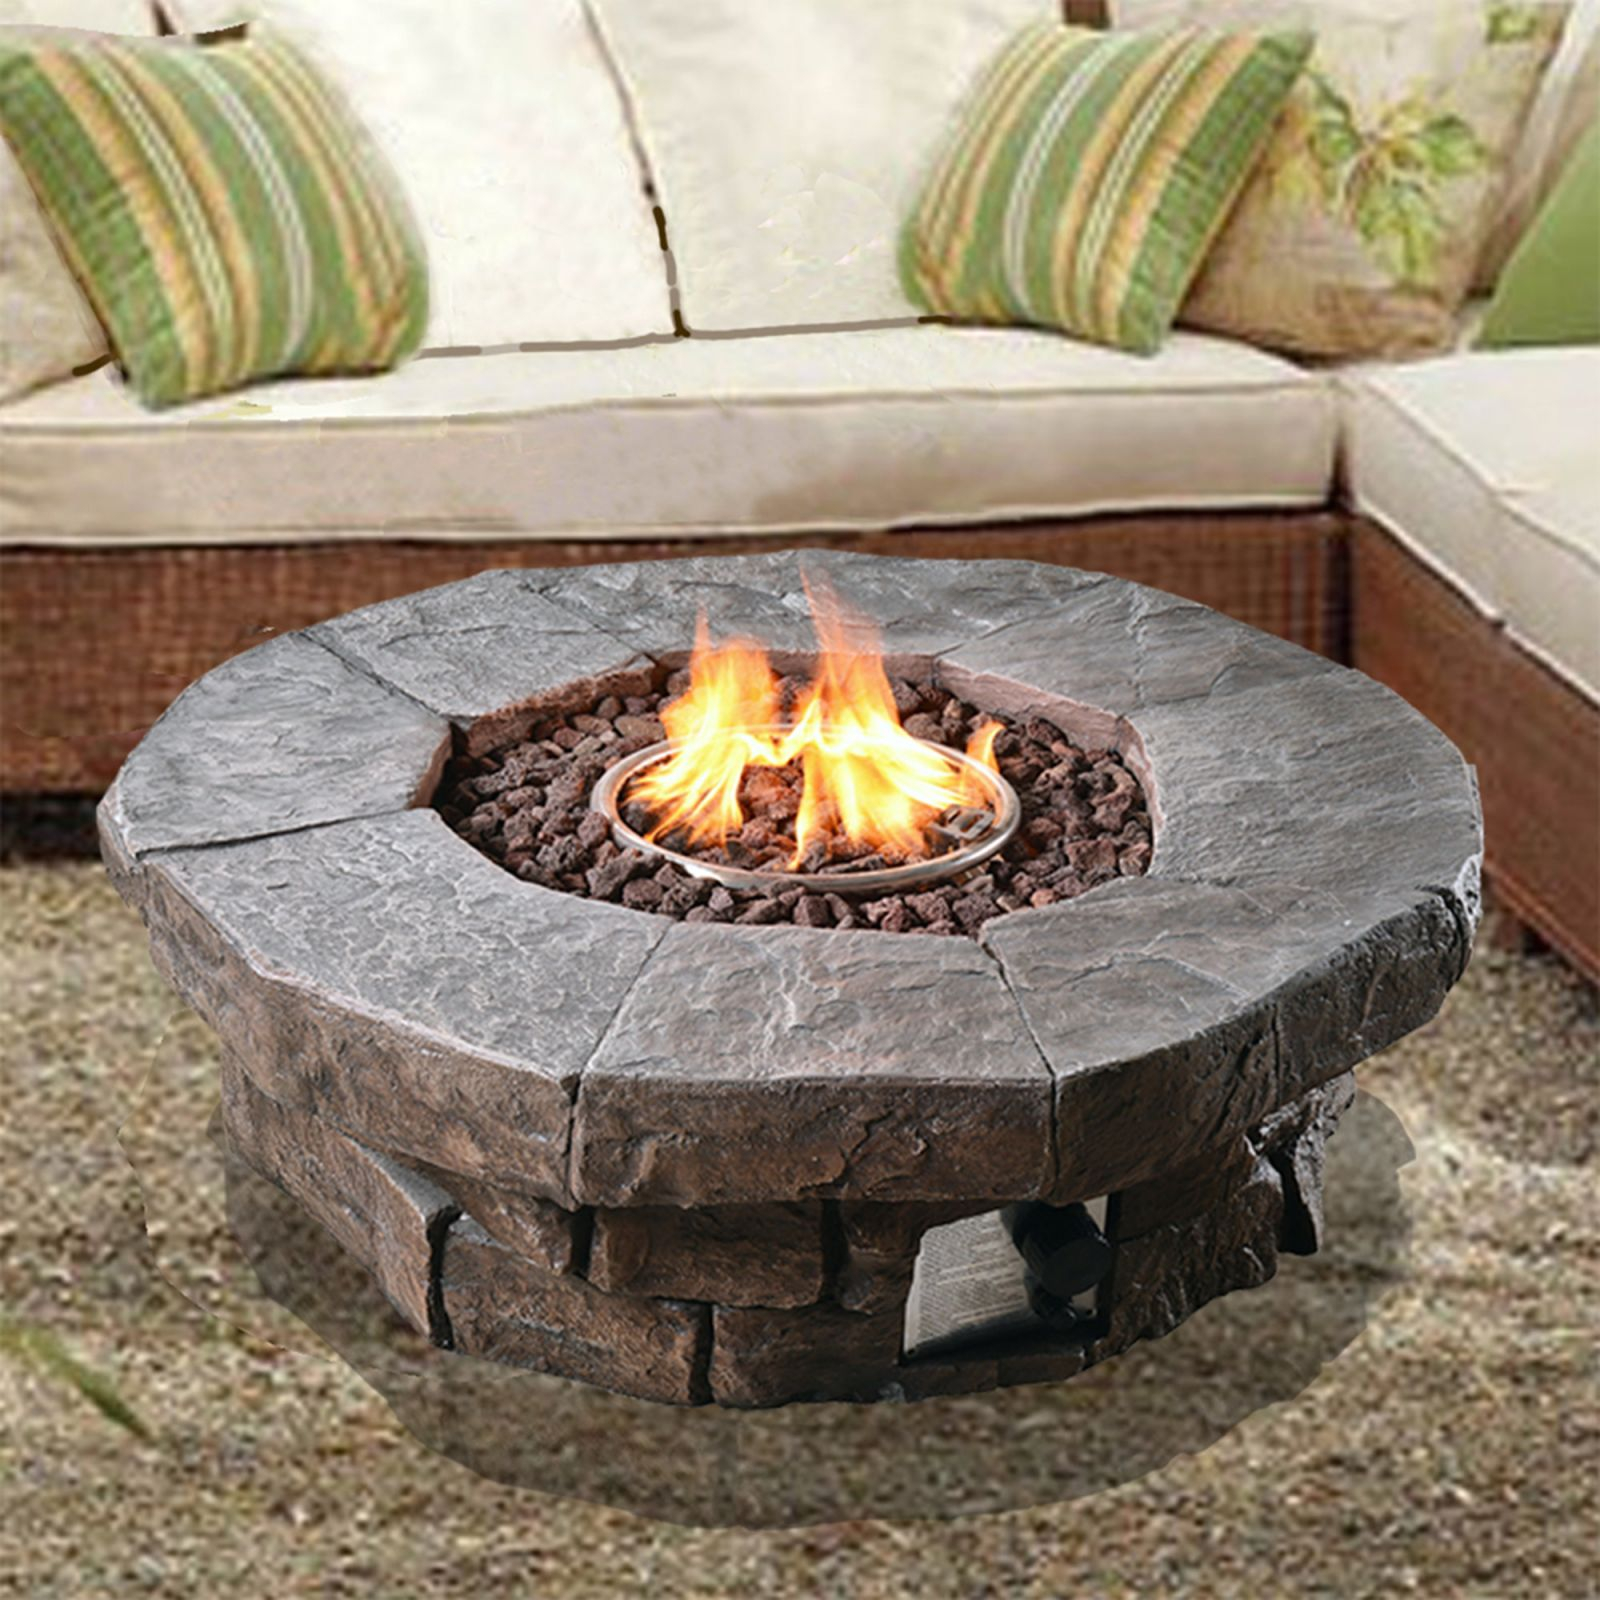 Peaktop Outdoor Polyresin Propane Gas Fire Pit & Reviews | Wayfair inside Outdoor Propane Fire Pit